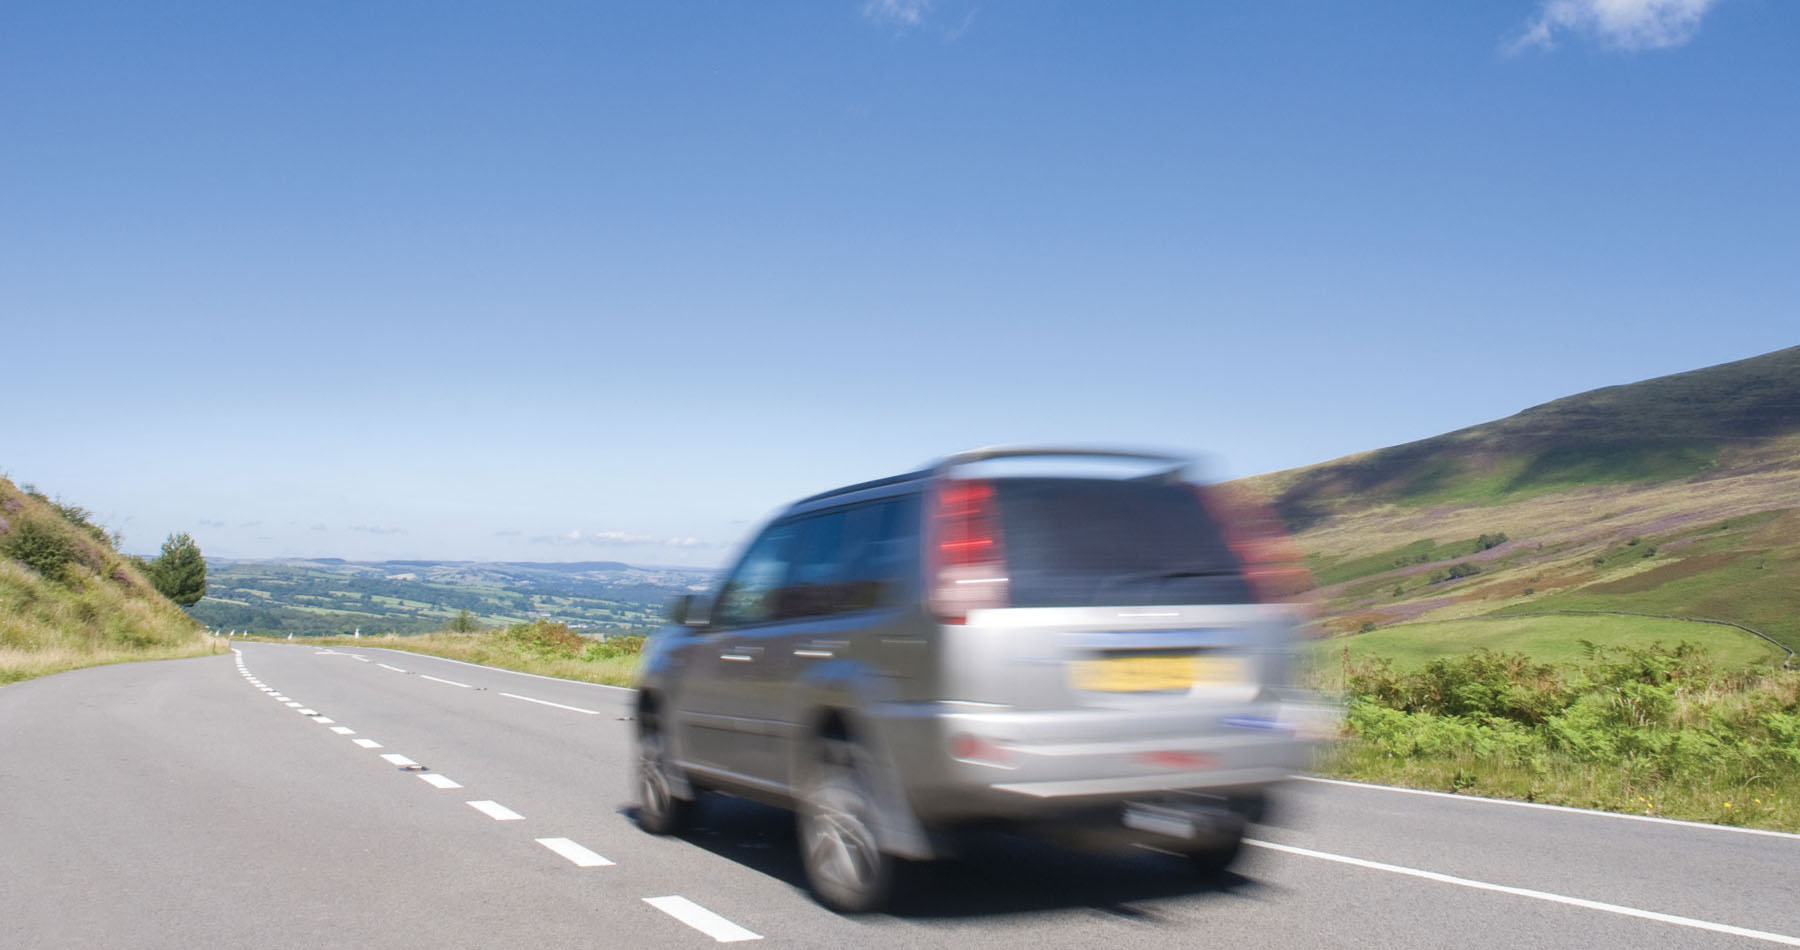 The Road Safety Solutions - TRSSL - Driving Lessons driving school Car and Road background Image